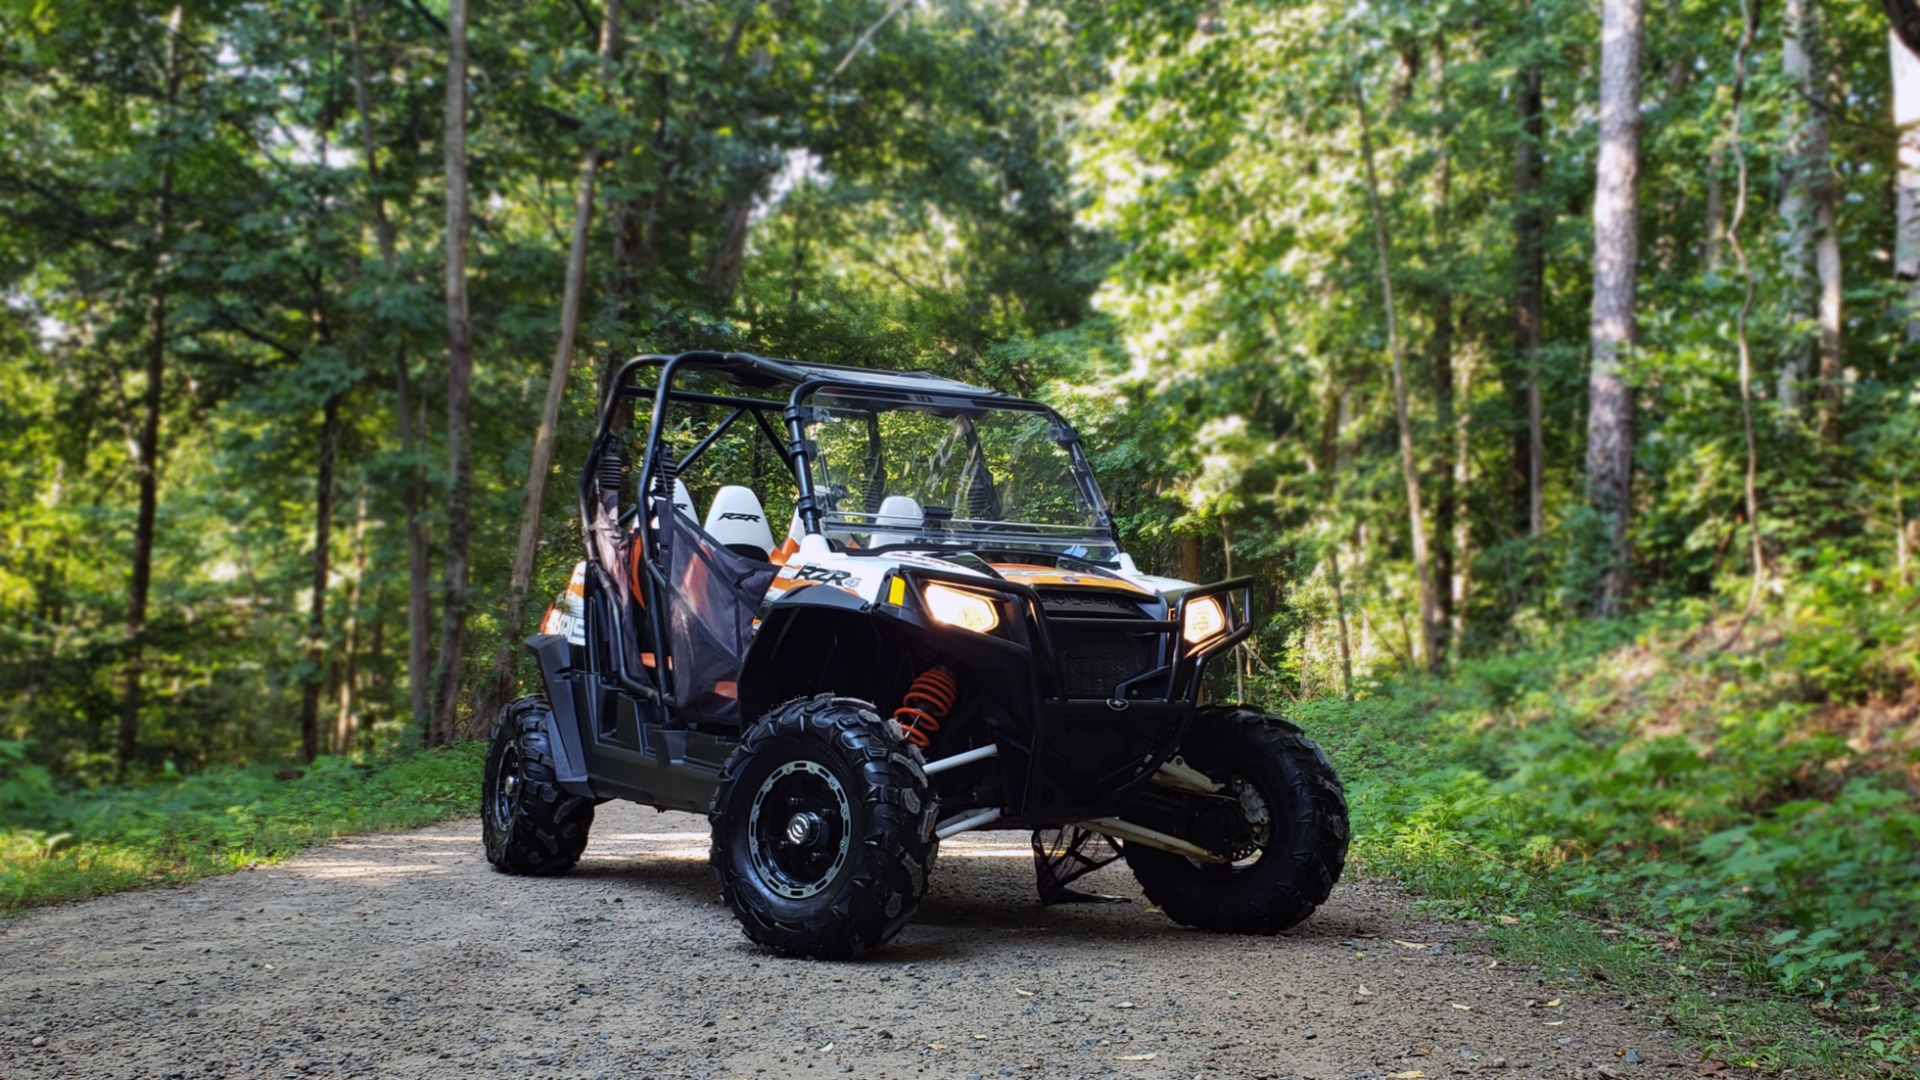 Used 2012 POLARIS RANGER RZR4 / HO 800 EFI / IPHONE CONNECT / SPEAKERS / NEW TIRES for sale Sold at Formula Imports in Charlotte NC 28227 1